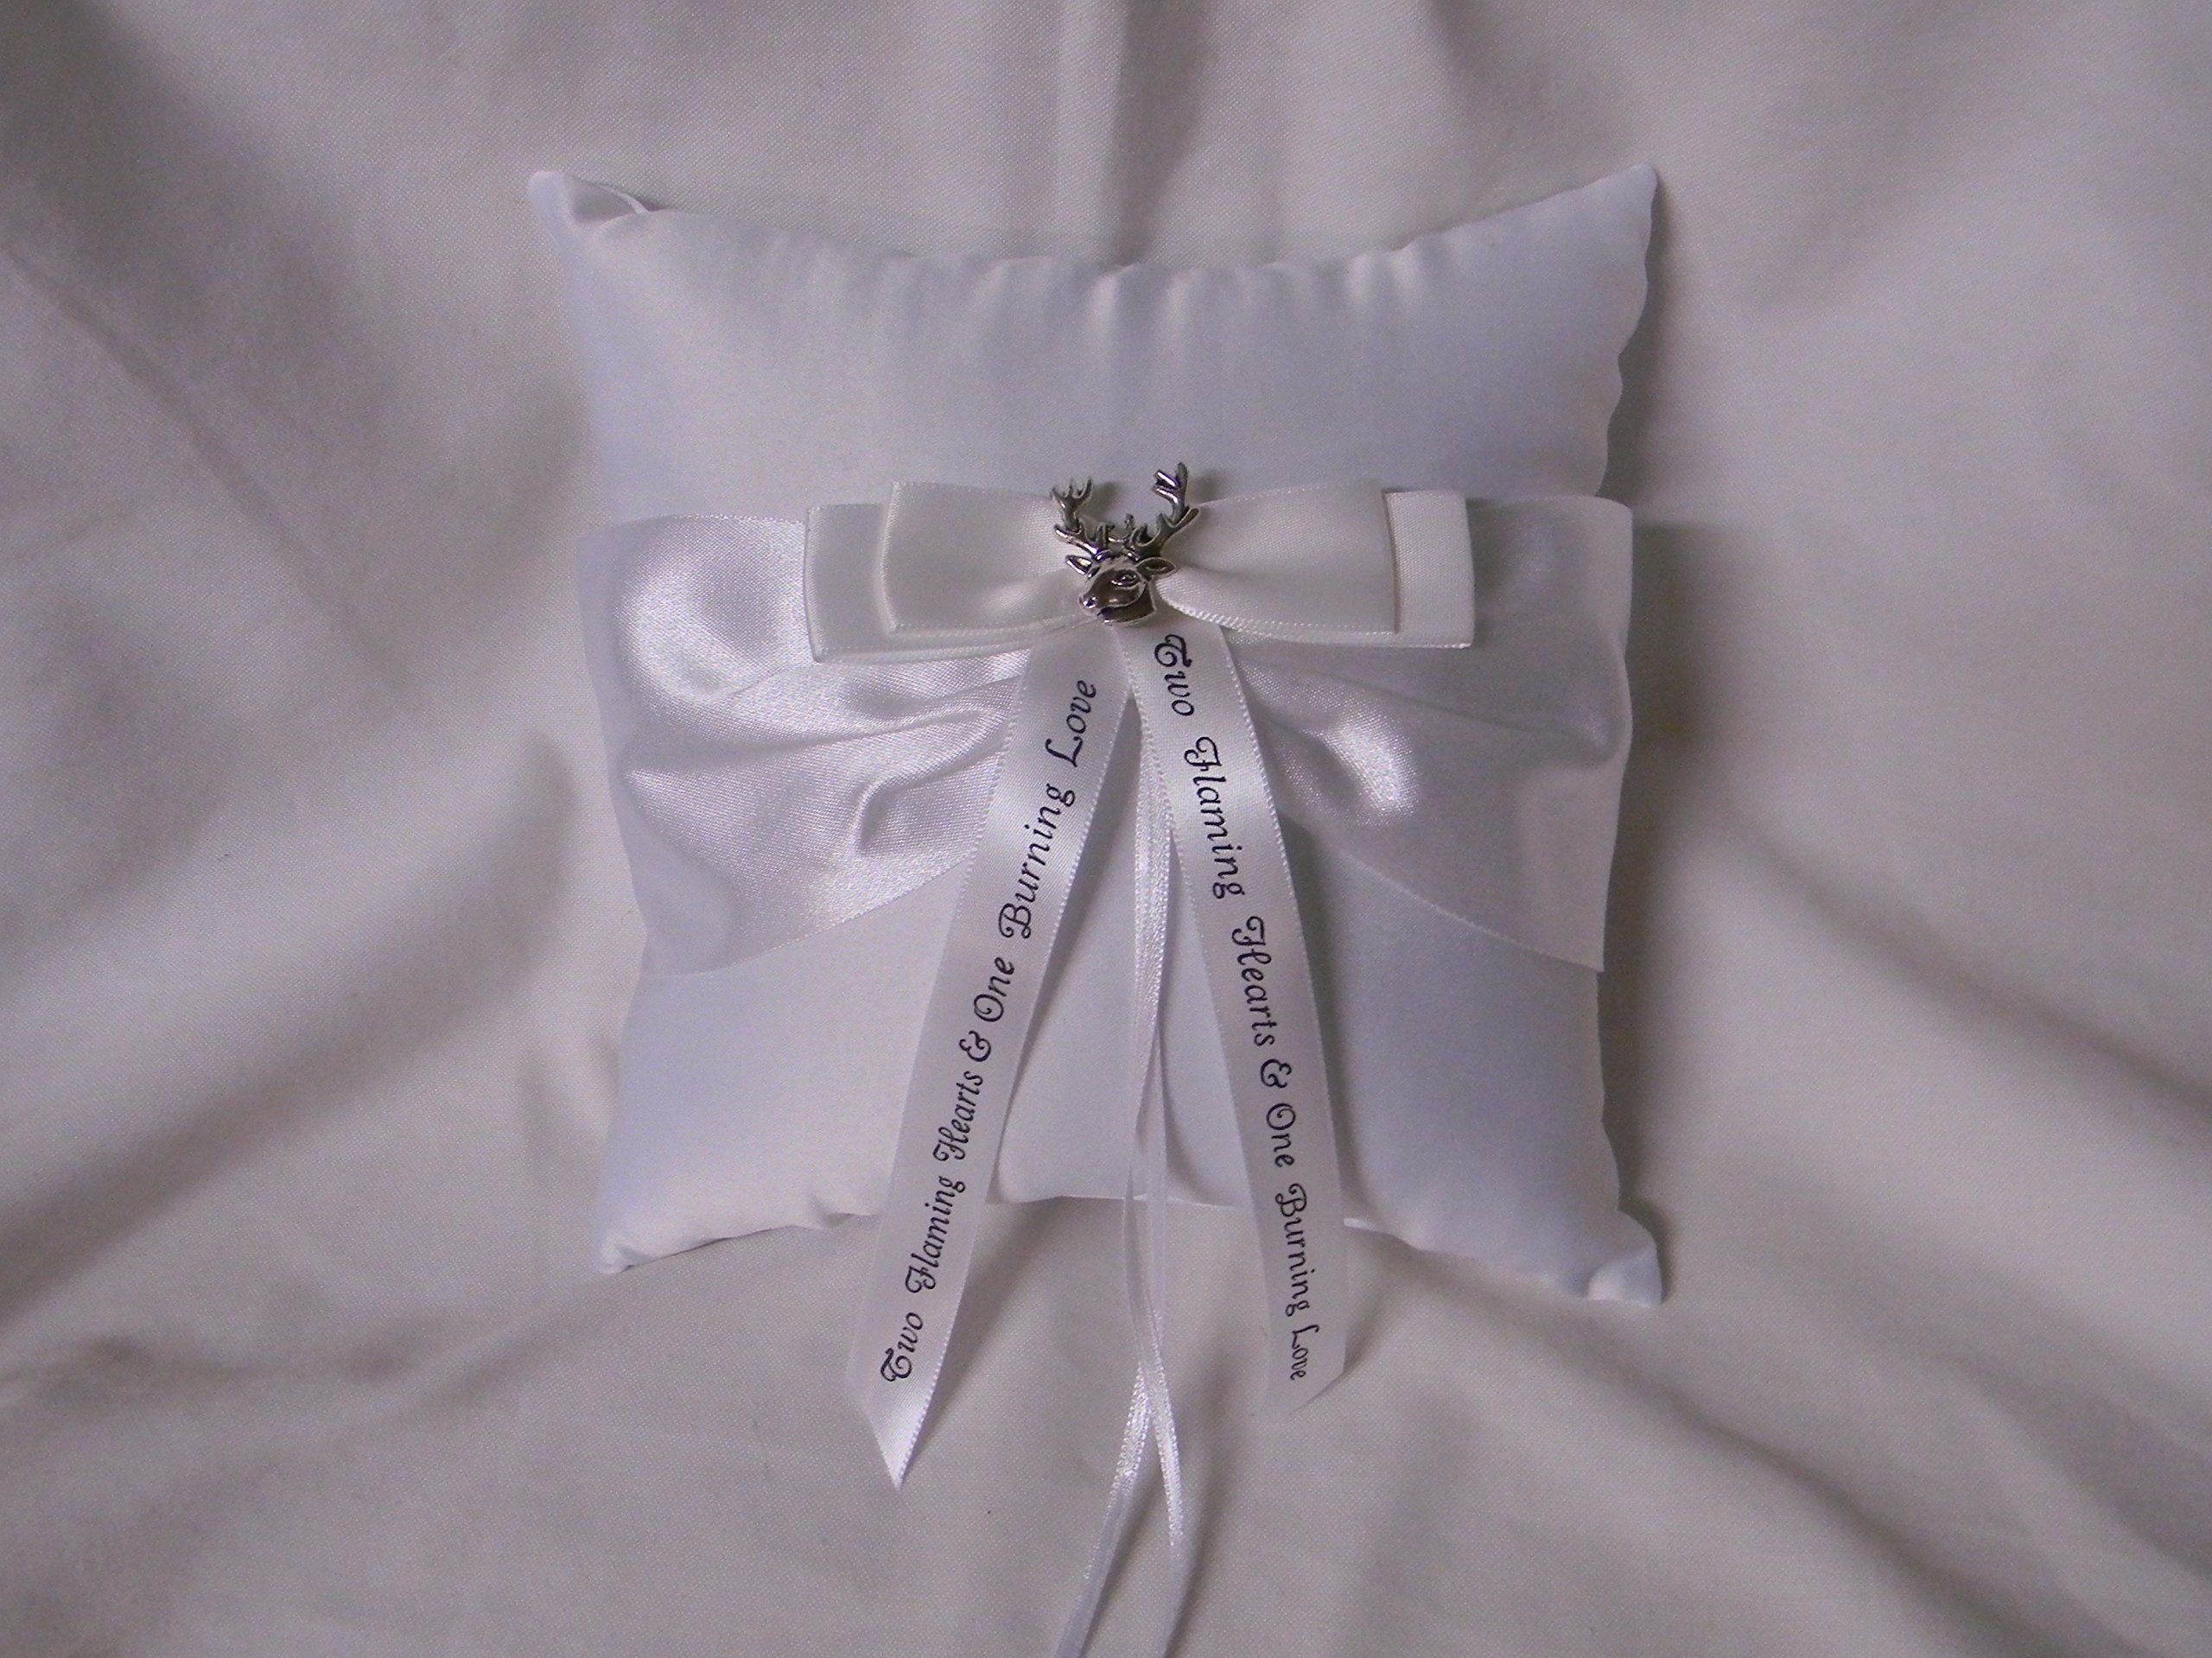 Wedding ceremony Party Ring bearer Pillow Deer Hunter with Message Ribbon by Custom Design Wedding Supplies by Suzanne